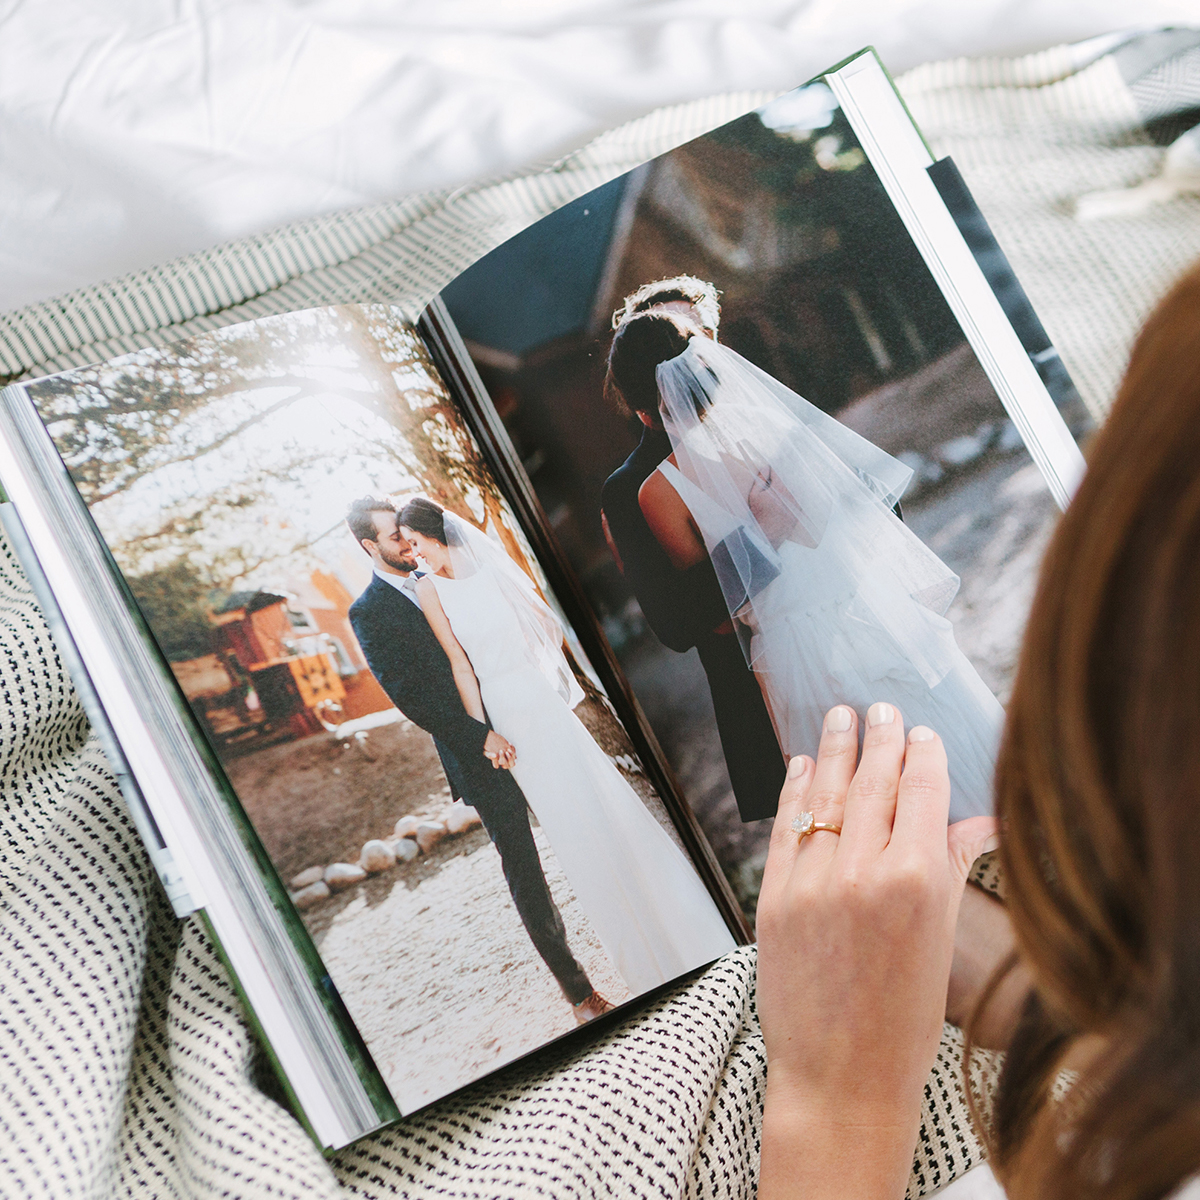 Woman flipping through interior pages of hardcover wedding photo book